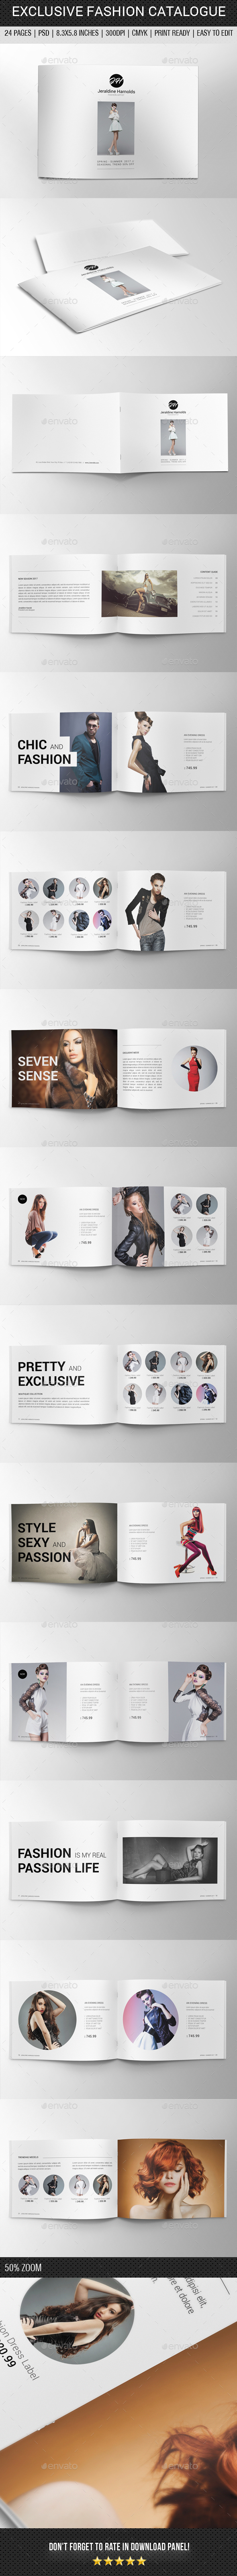 Exclusive Fashion Catalogue - Catalogs Brochures